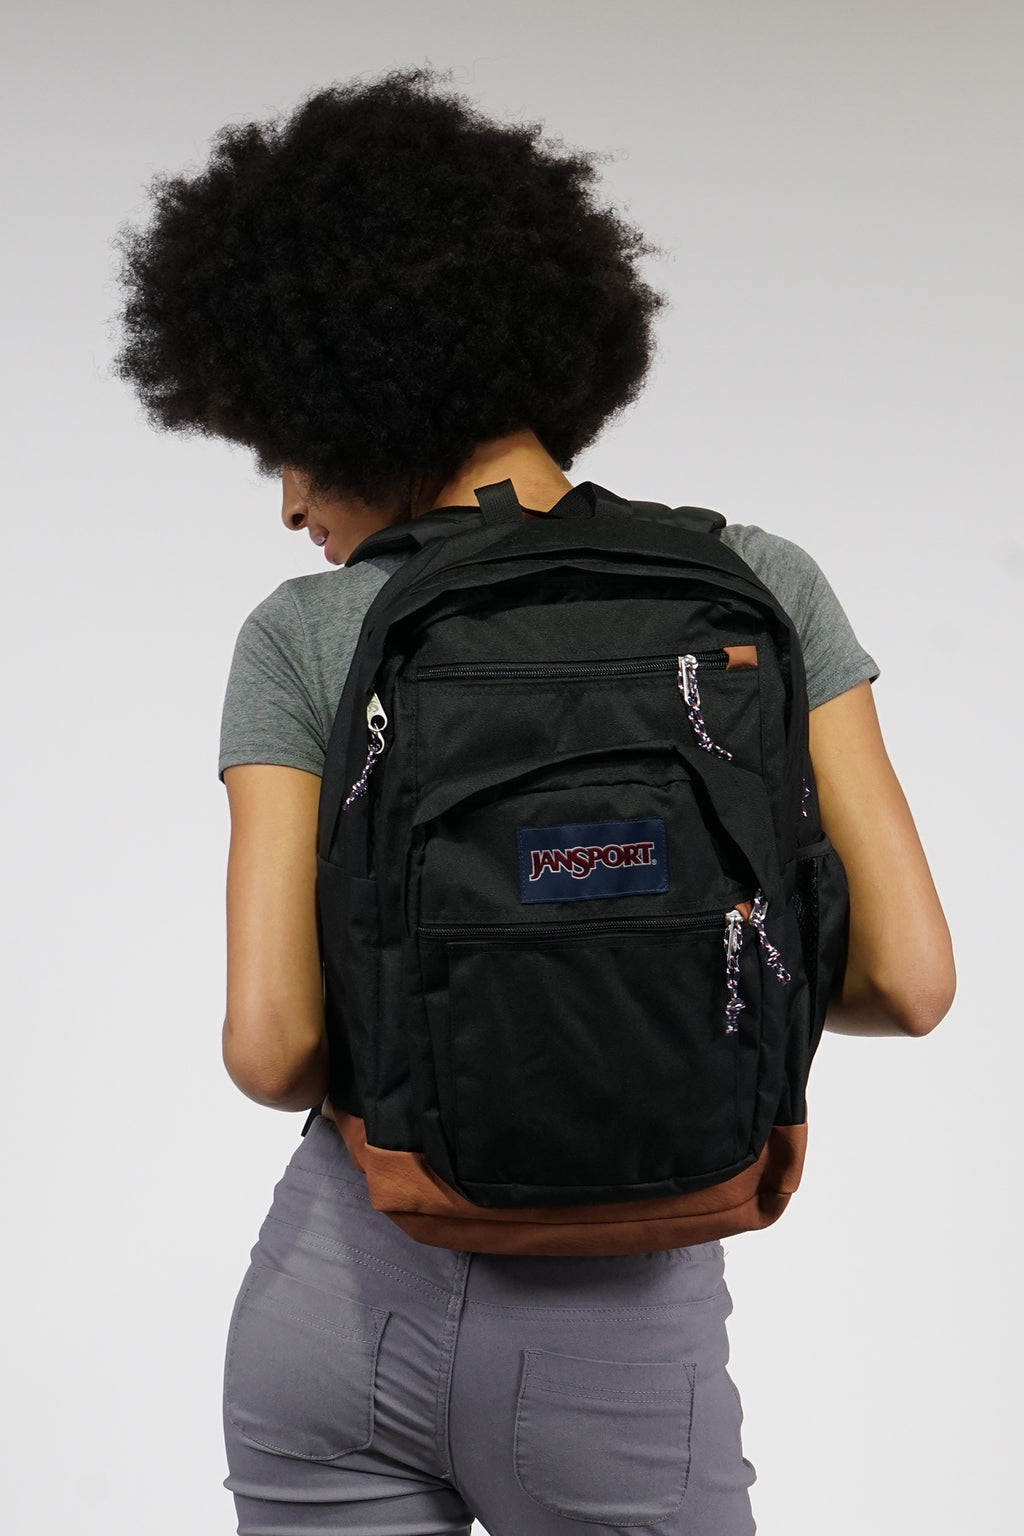 JANSPORTS COOL STUDENT BACKPACK